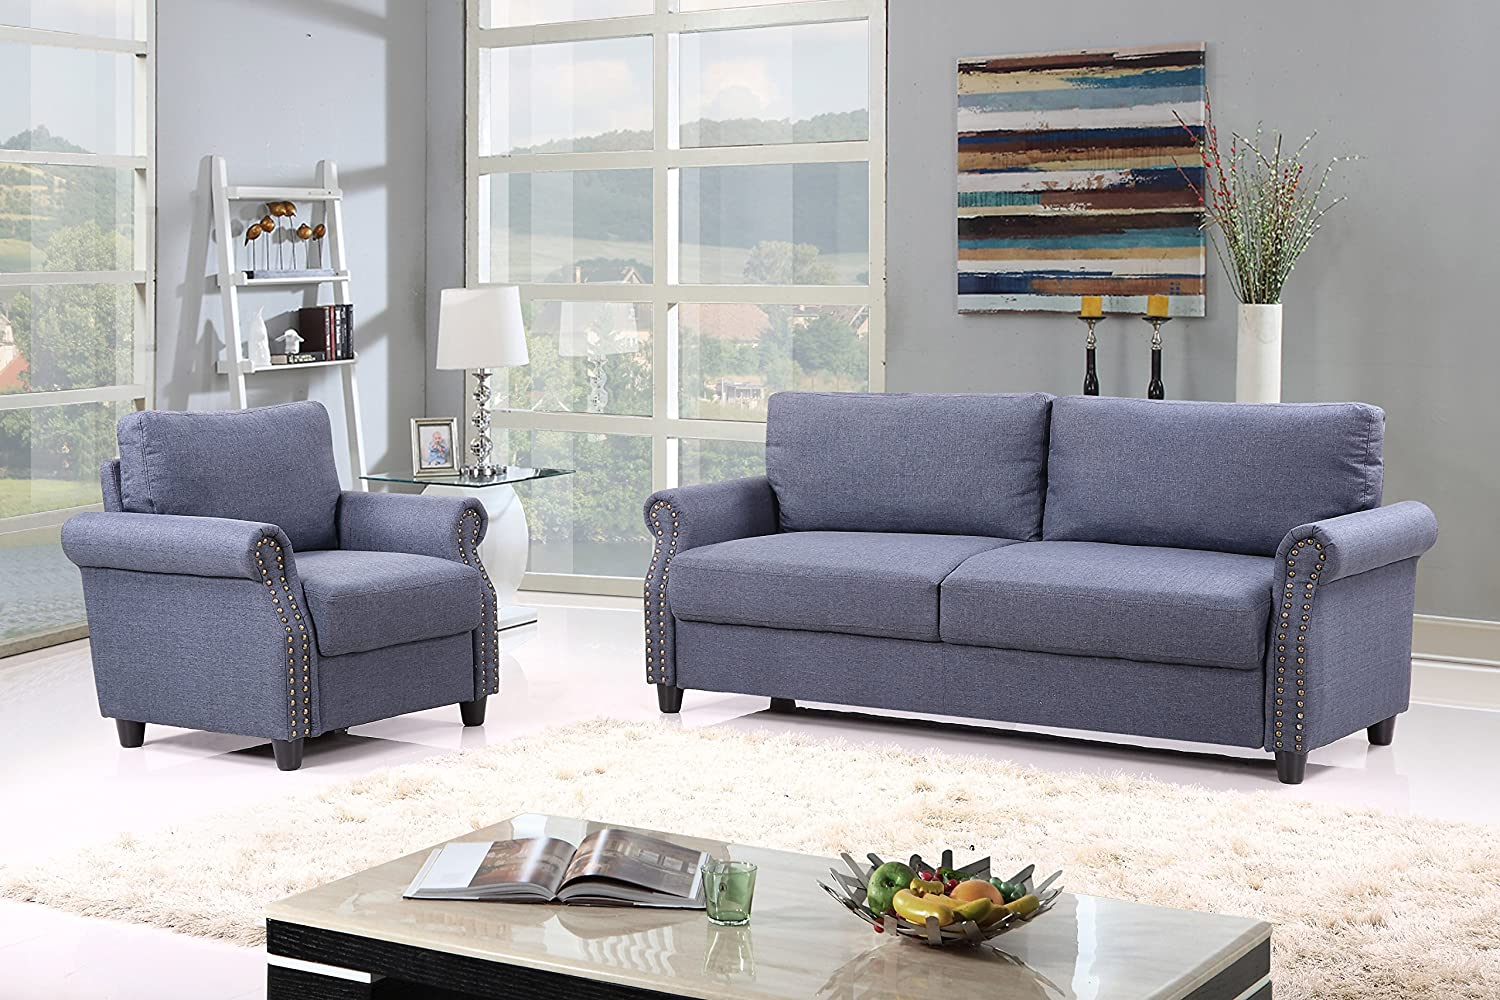 living room furniture amazon. Amazon com  2 Piece Classic Linen Fabric Living Room Sofa and Armchair Furniture Set with Nailhead Trim Blue Kitchen Dining